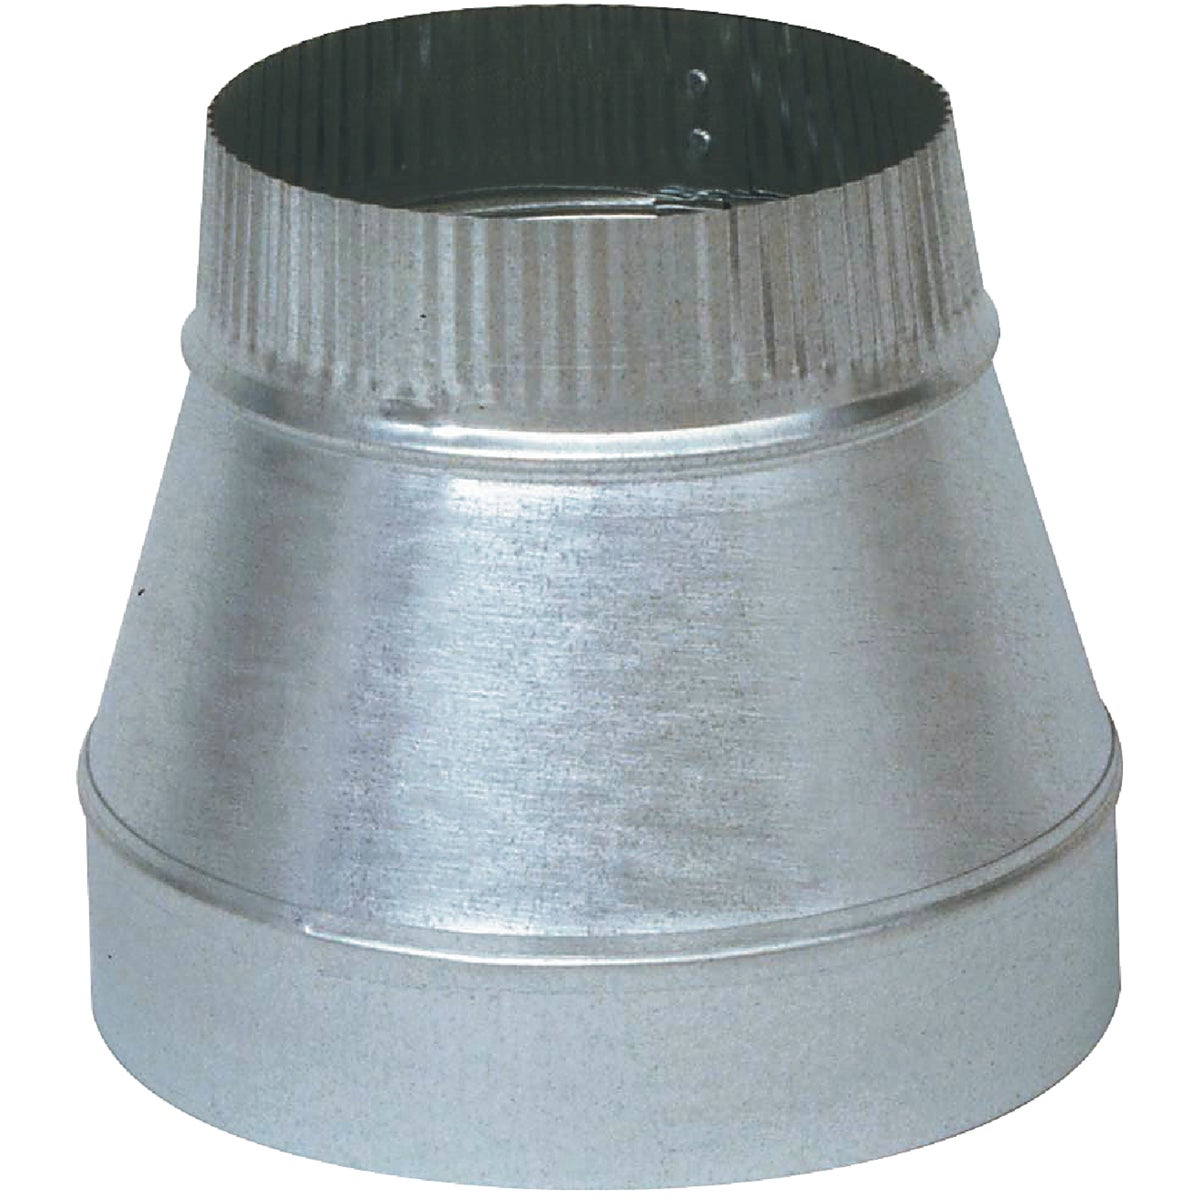 8X7 GALV REDUCER - GV1352 by Imperial Mfg Group